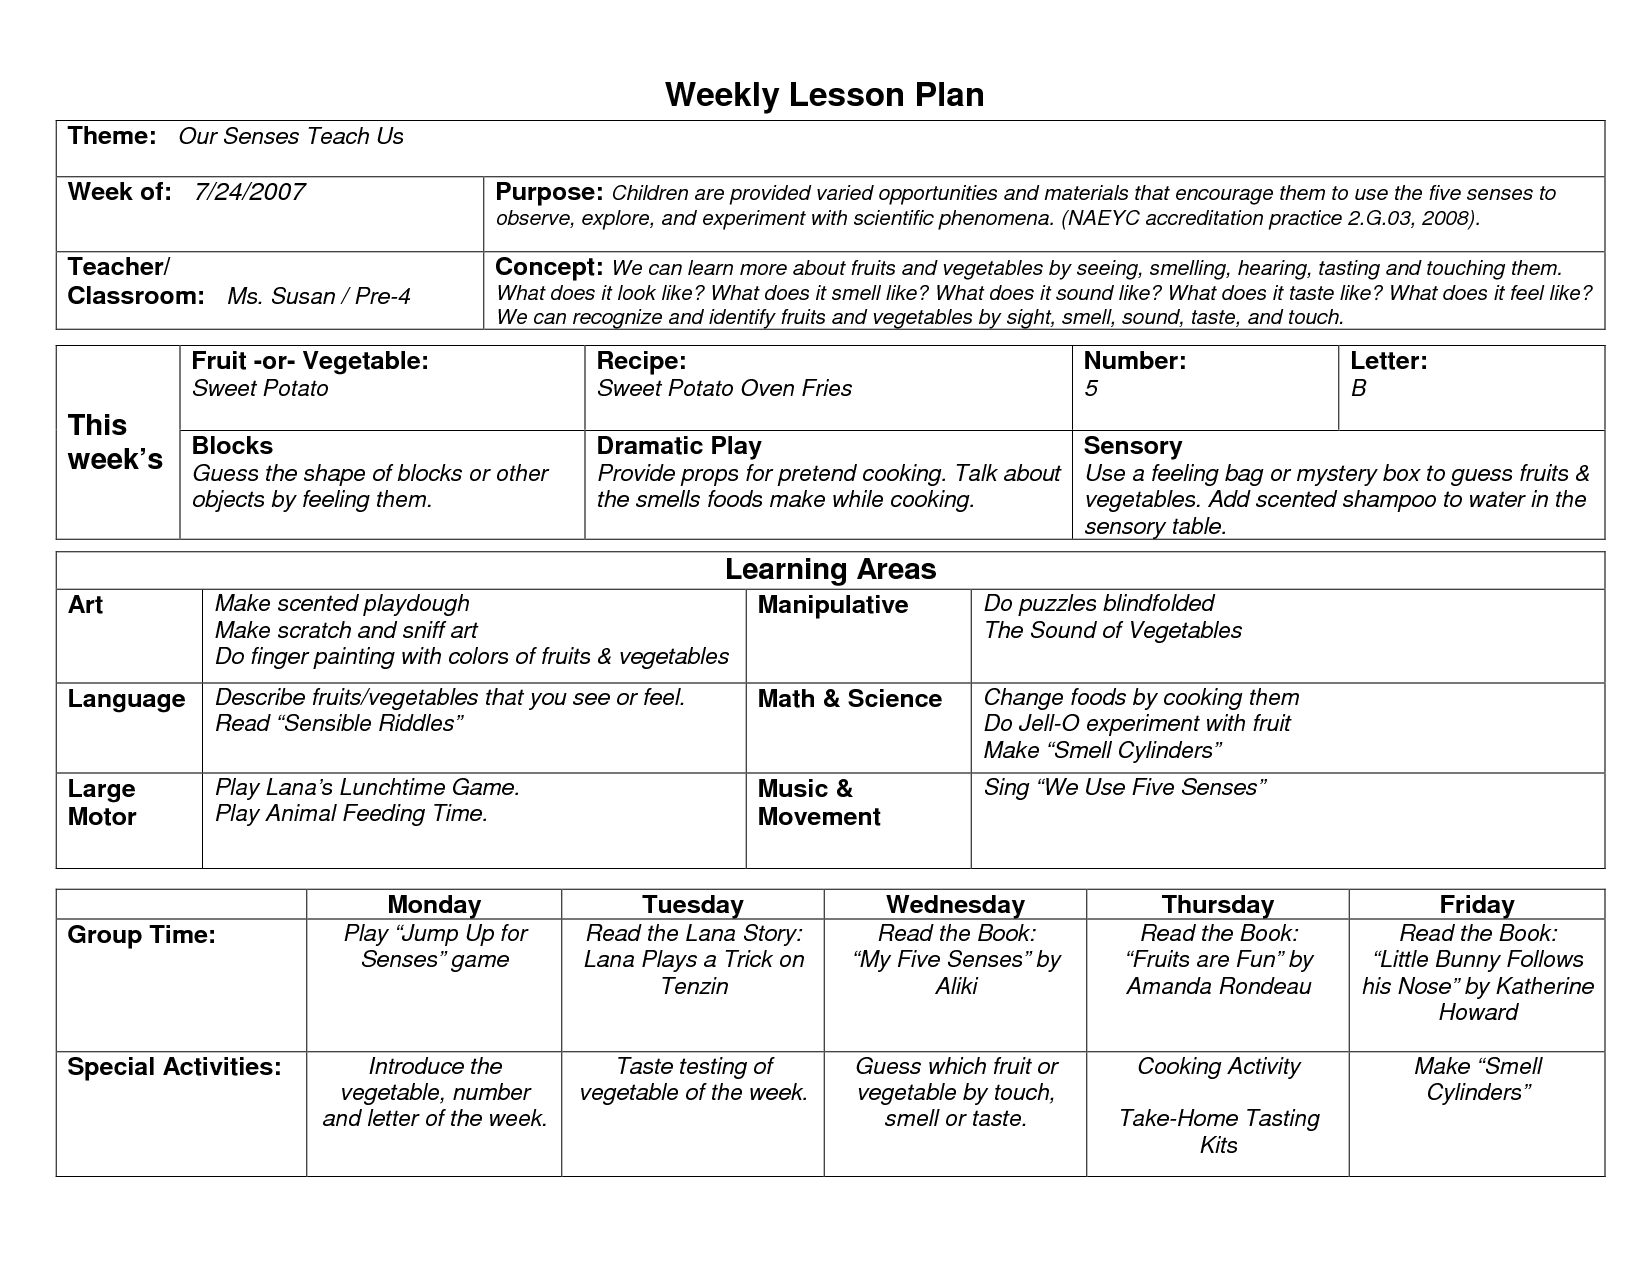 NAEYC Lesson Plan Template For Preschool Sample Weekly Lesson - Preschool weekly lesson plan template